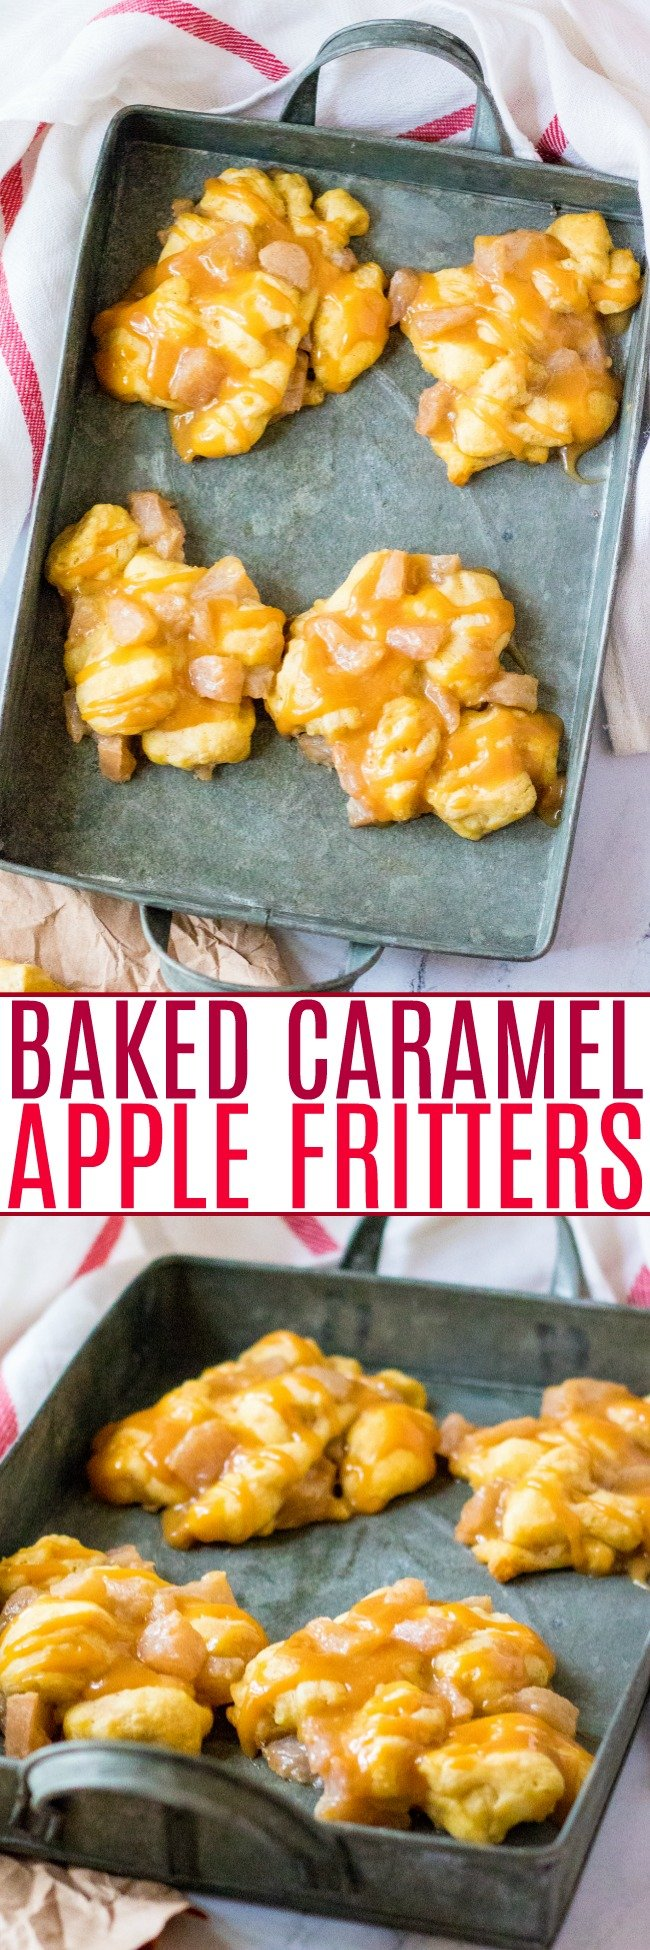 Baked Caramel Apple Fritters - Love the taste of apple fritters but don't want the calories or hassle that comes with frying them? Then these FAST and EASY baked apple fritters made with just four main ingredients are PERFECT!!